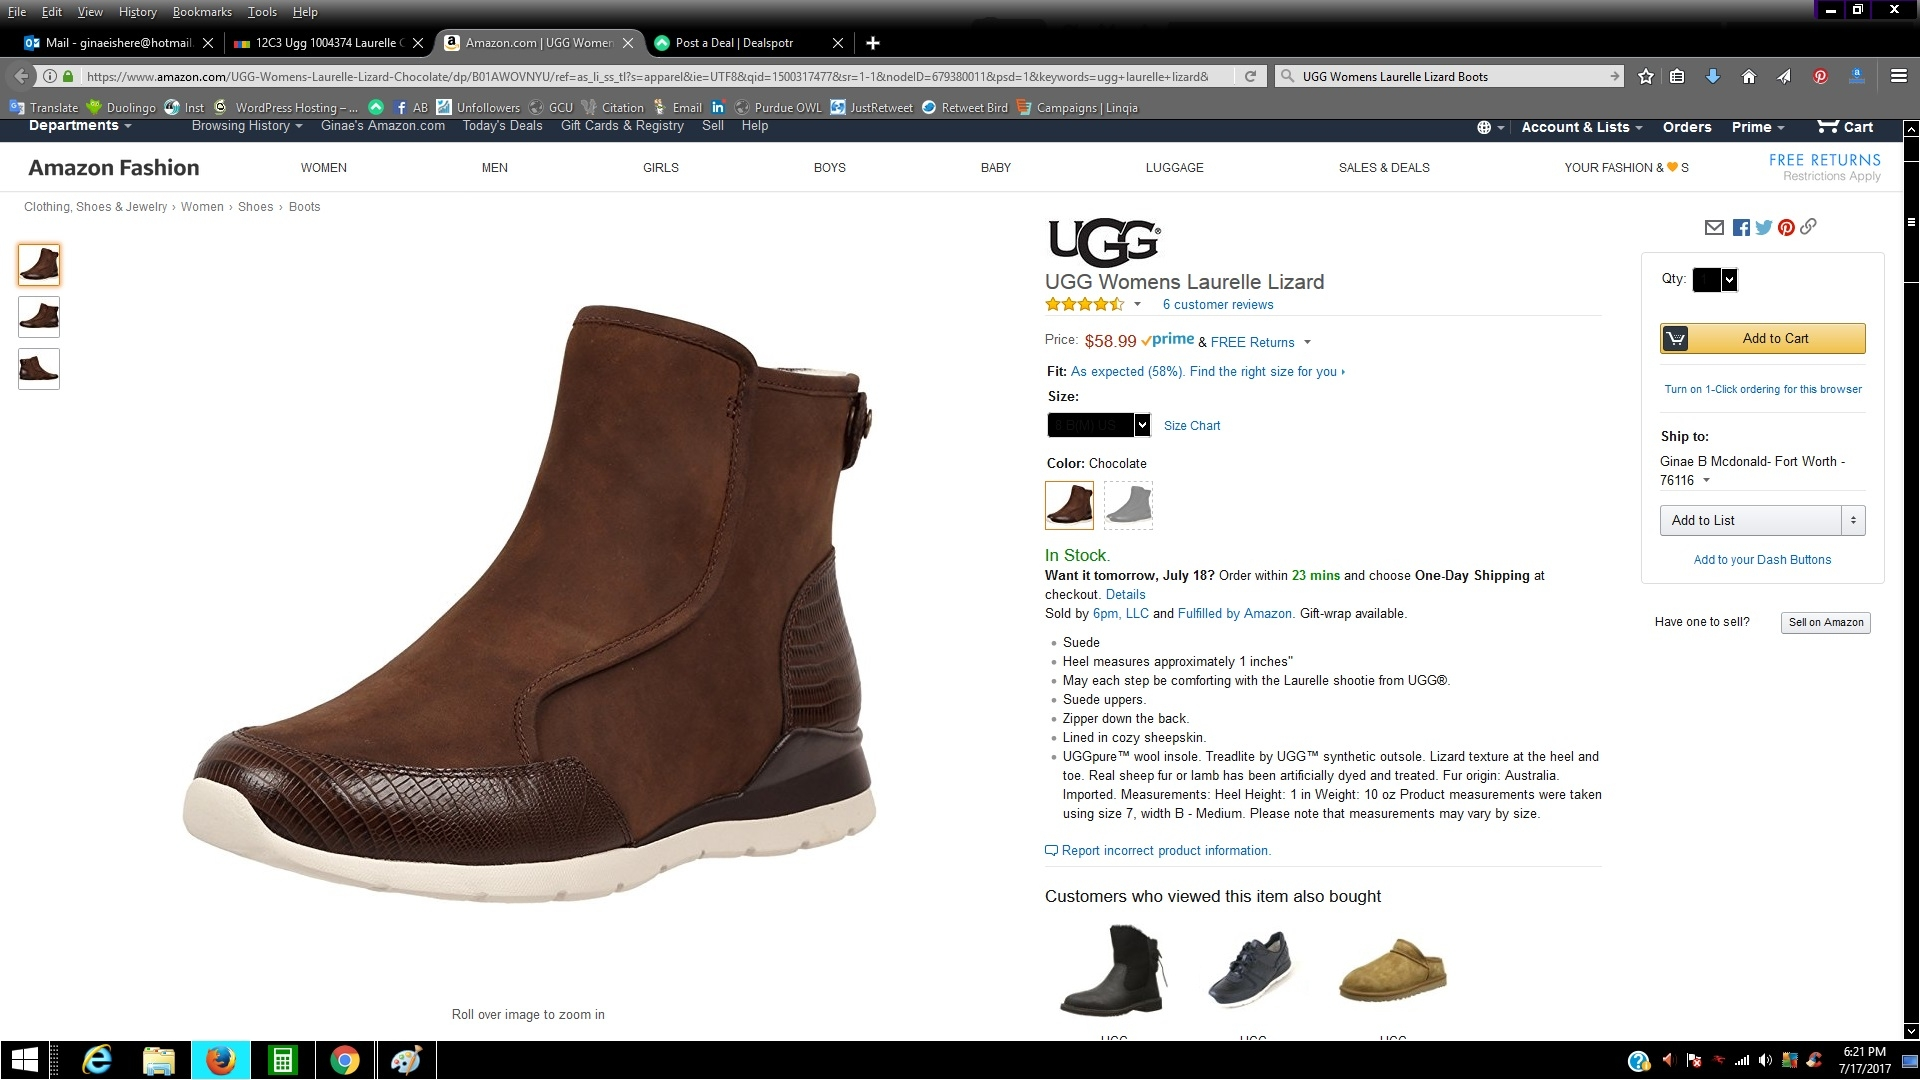 Uggs coupons codes 2019